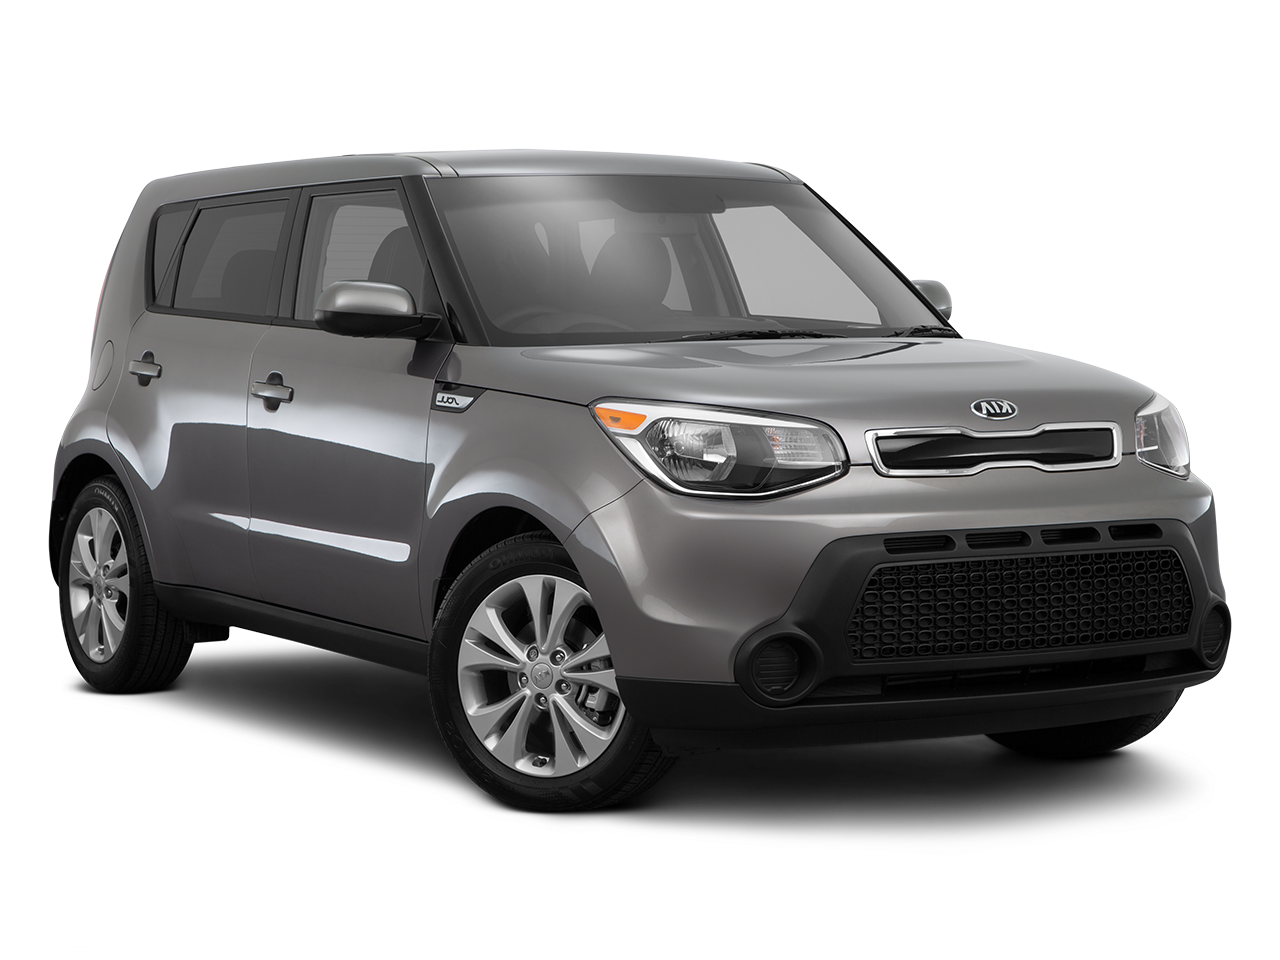 2016 kia soul car photos catalog 2018. Black Bedroom Furniture Sets. Home Design Ideas